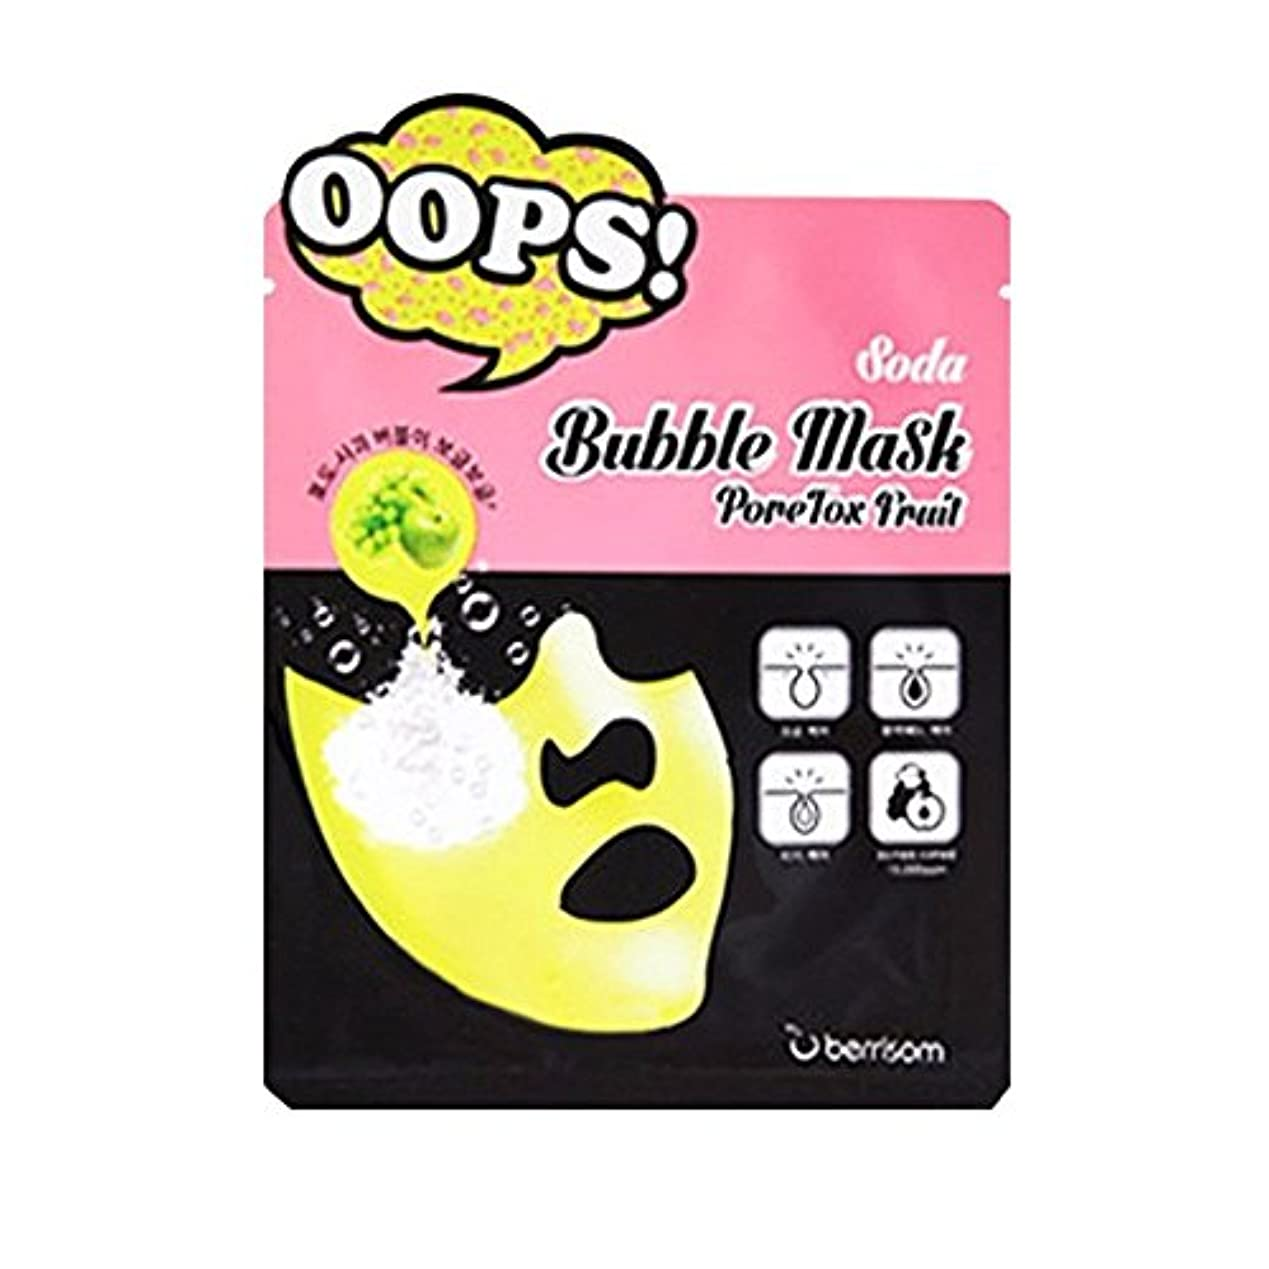 国家歯うめき声Berrisom Oops Soda Bubble Mask - 1pack (5pcs) poretox Fruit /ベリーサム Oops ソーダ バブル マスク - 1pack (5pcs) poretox Fruit